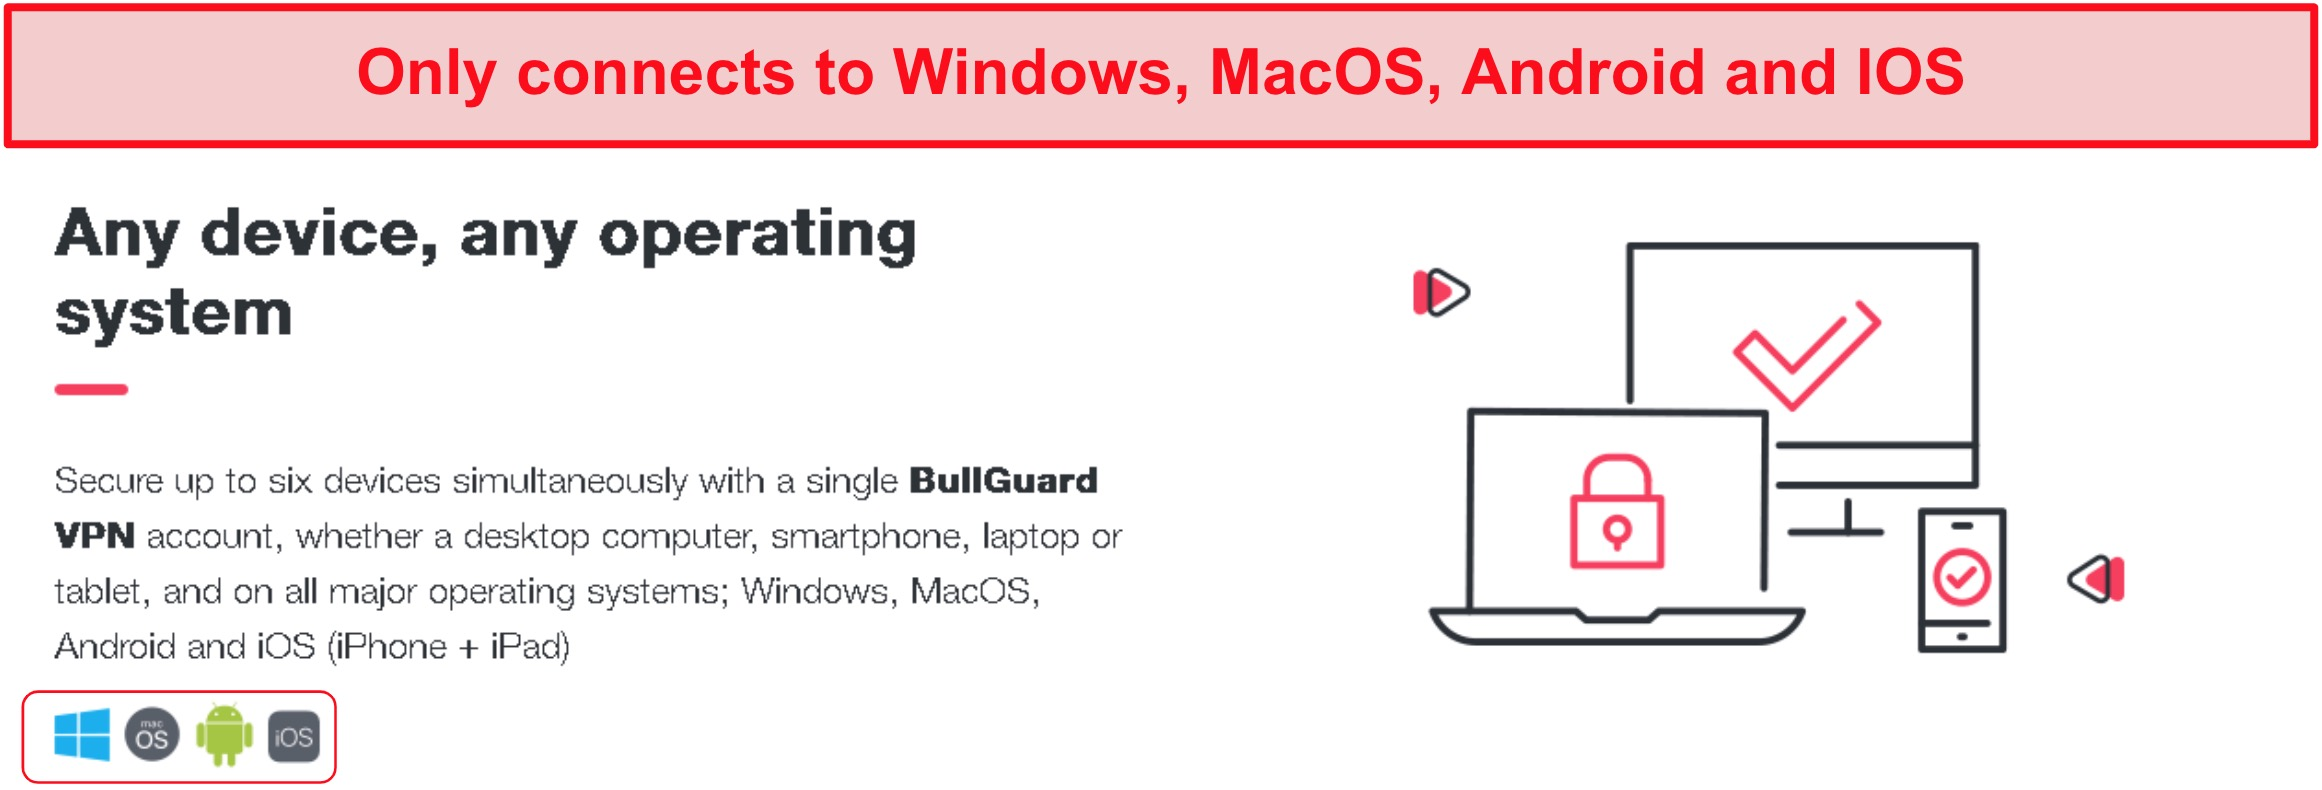 Screenshot of the limited amount of devices BullGuard can connect to